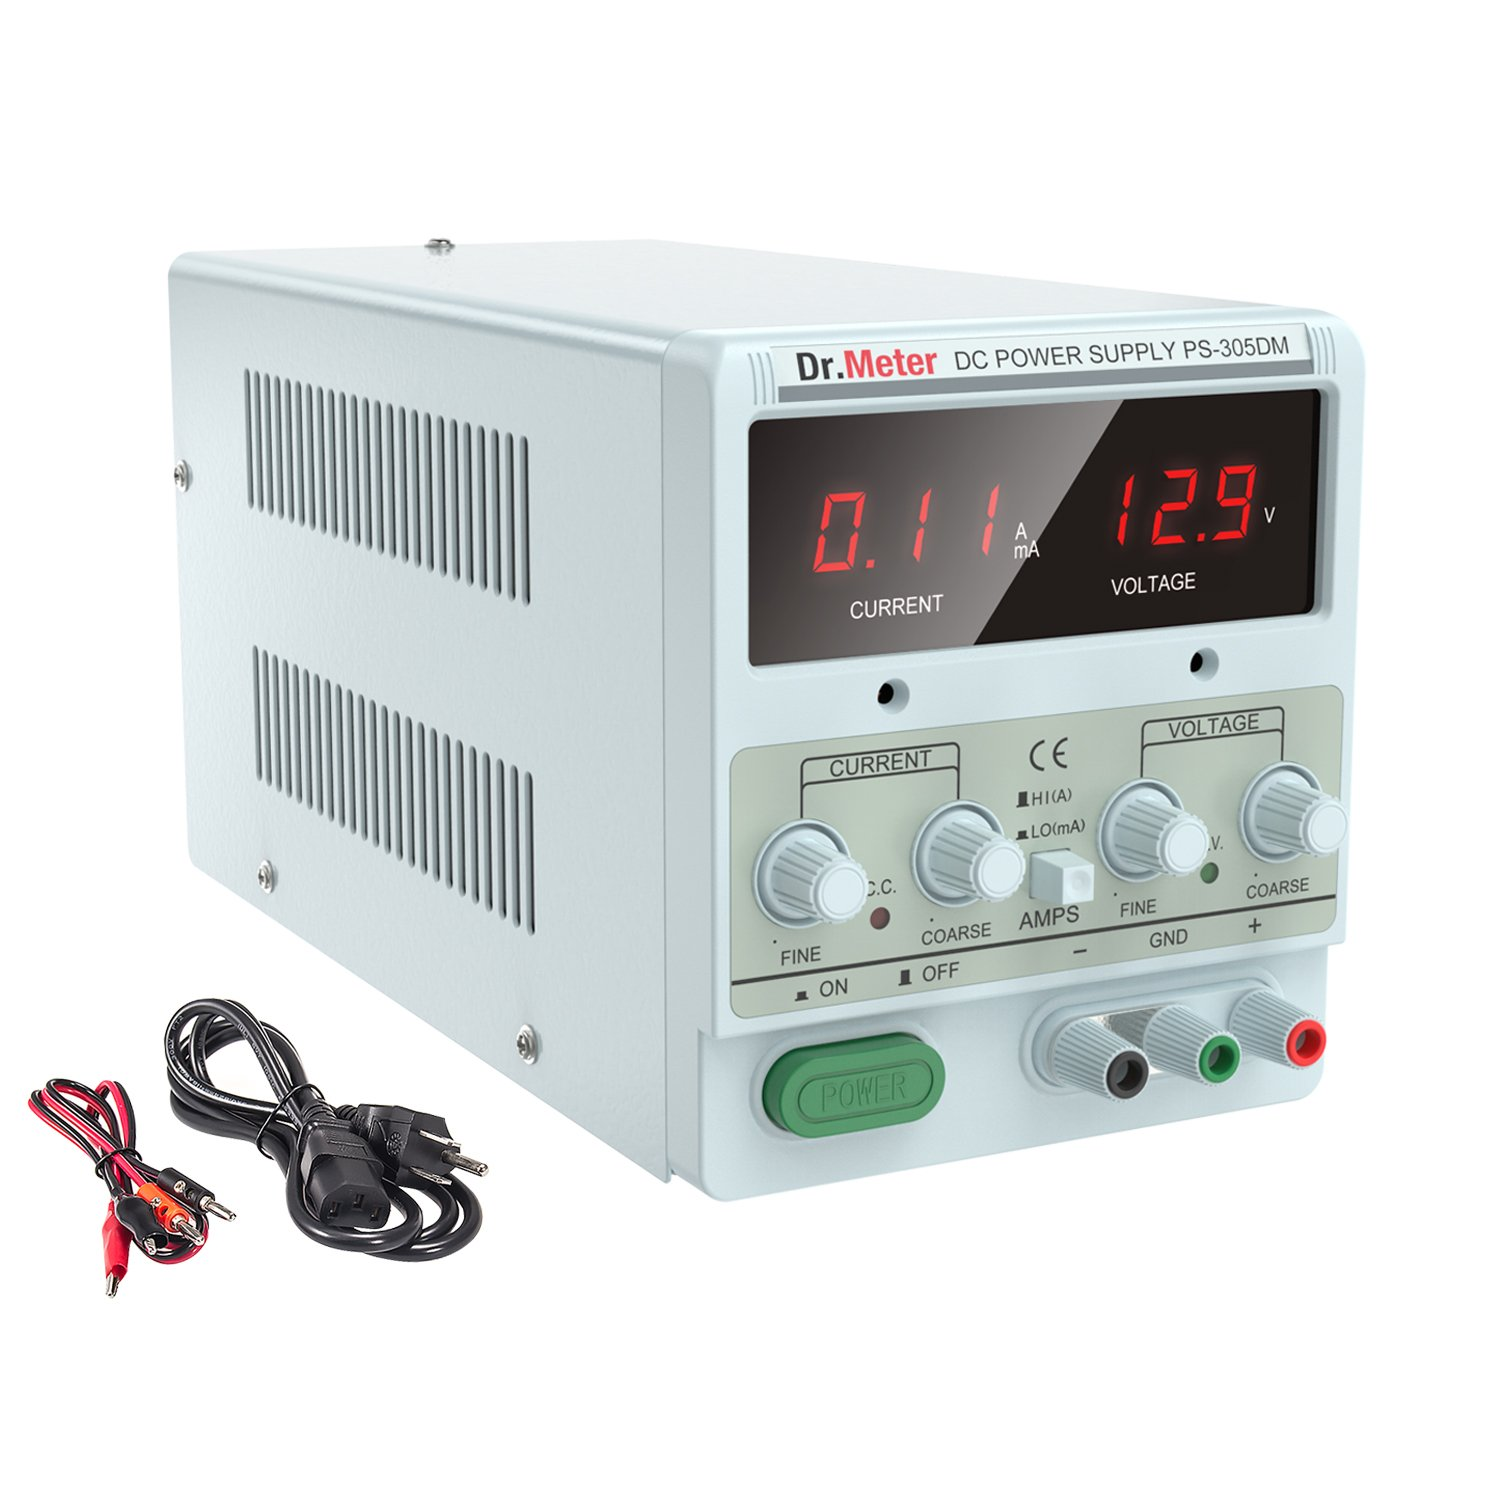 Power Supplies Lab Instruments Equipment Industrial Variable Supply Regulated Drmeter 30v 5a Dc Bench Single Output 110v 220v